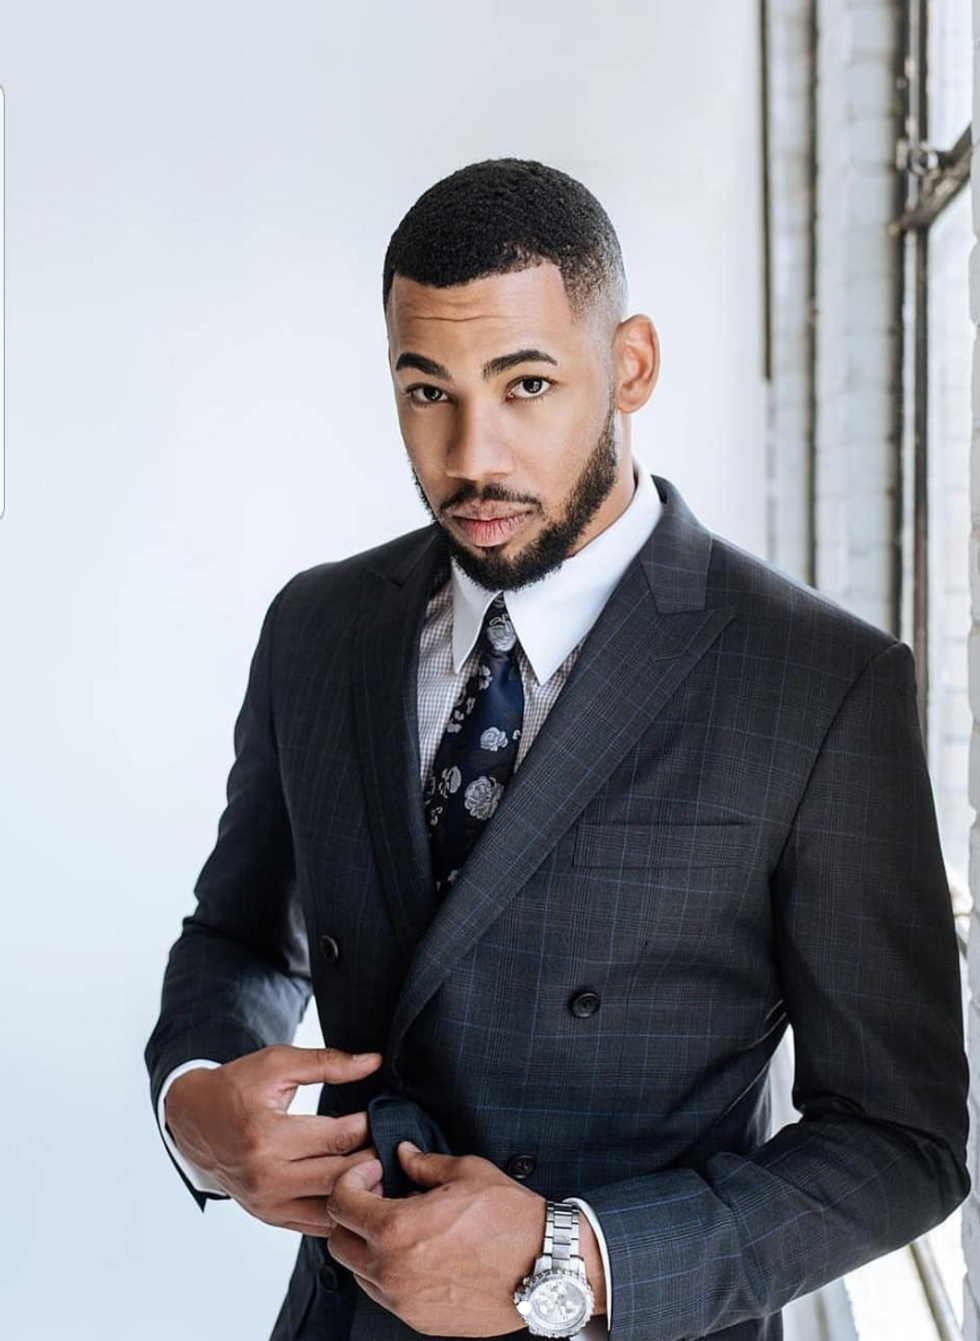 Bachelor Nation Needs Its First Black Male Lead, And Mike Johnson Is The Perfect Man For It